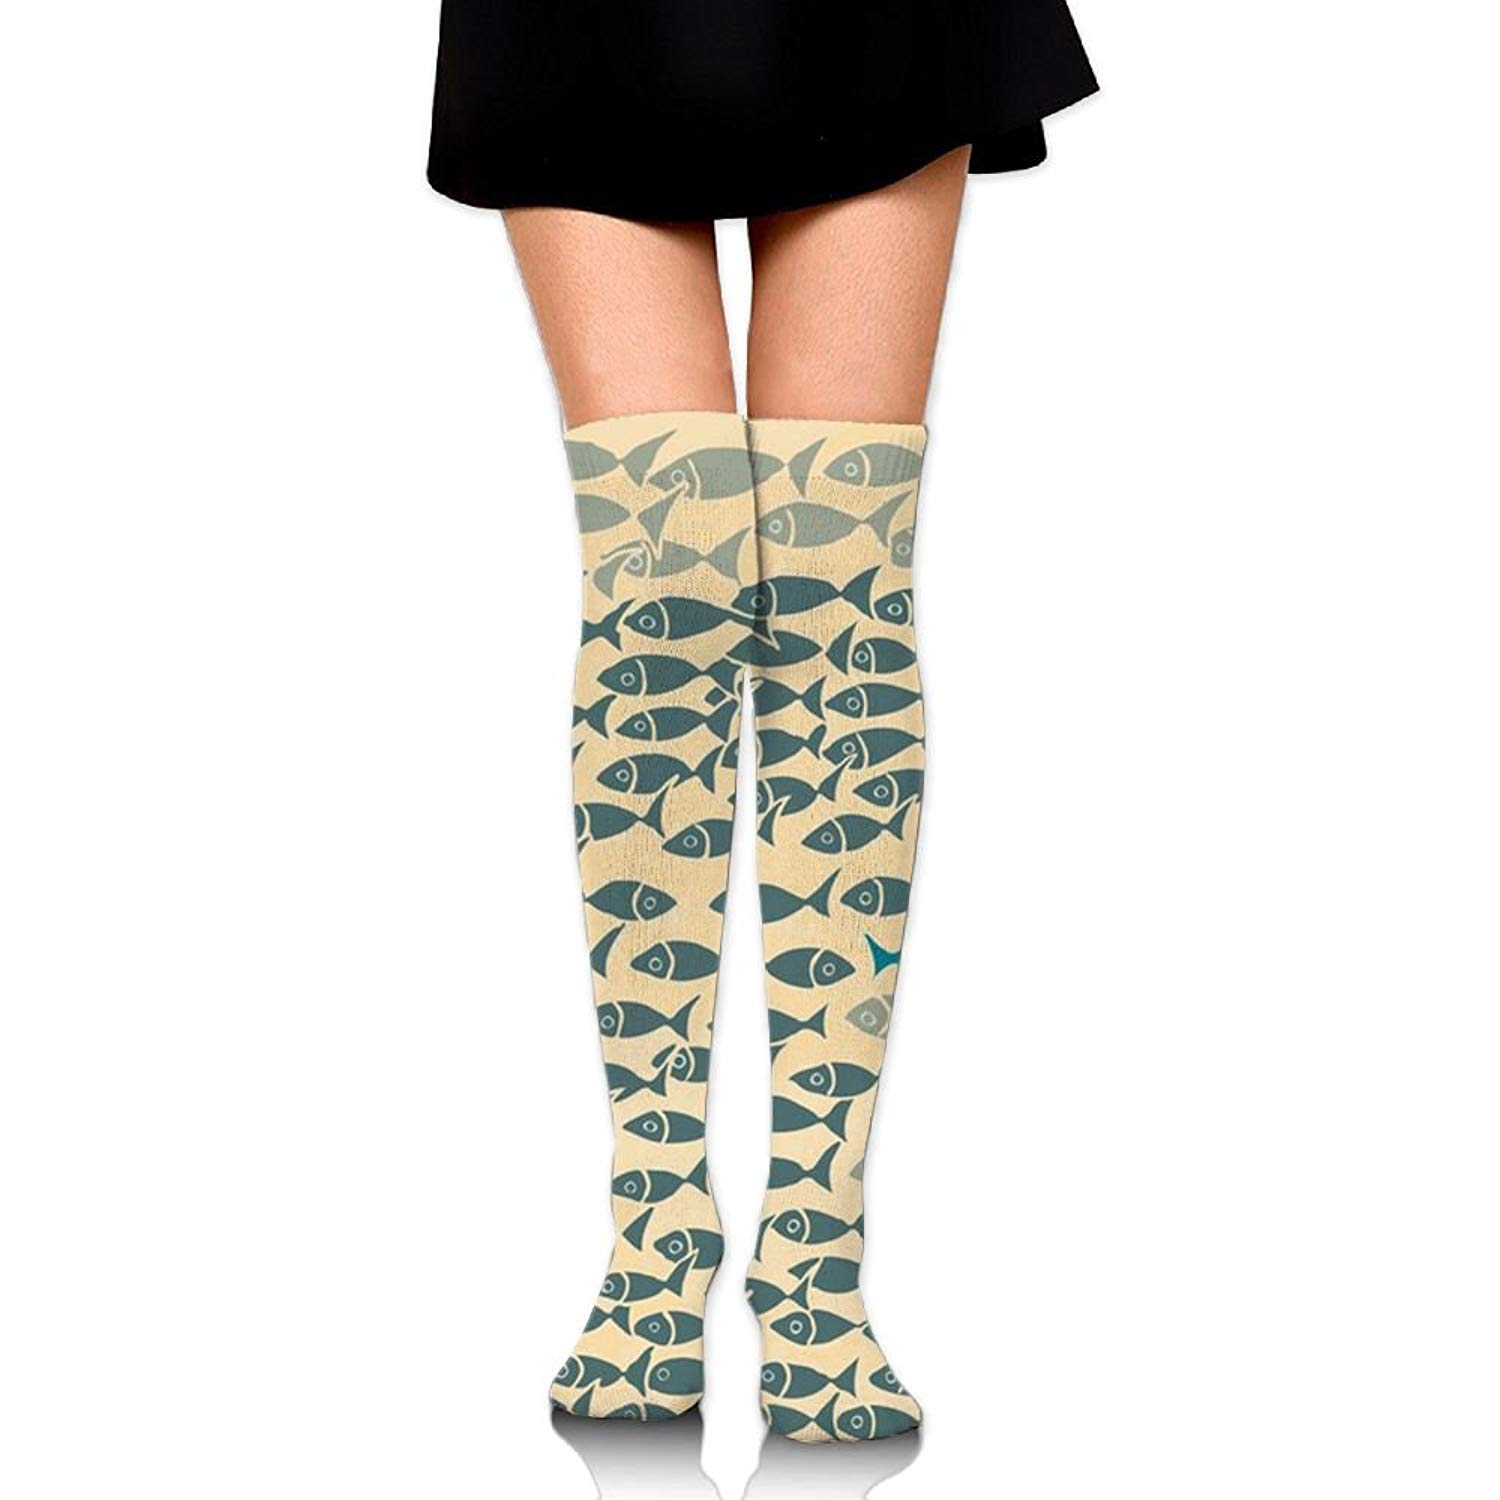 Zaqxsw Fish Women Retro Thigh High Socks Long Socks For Girls